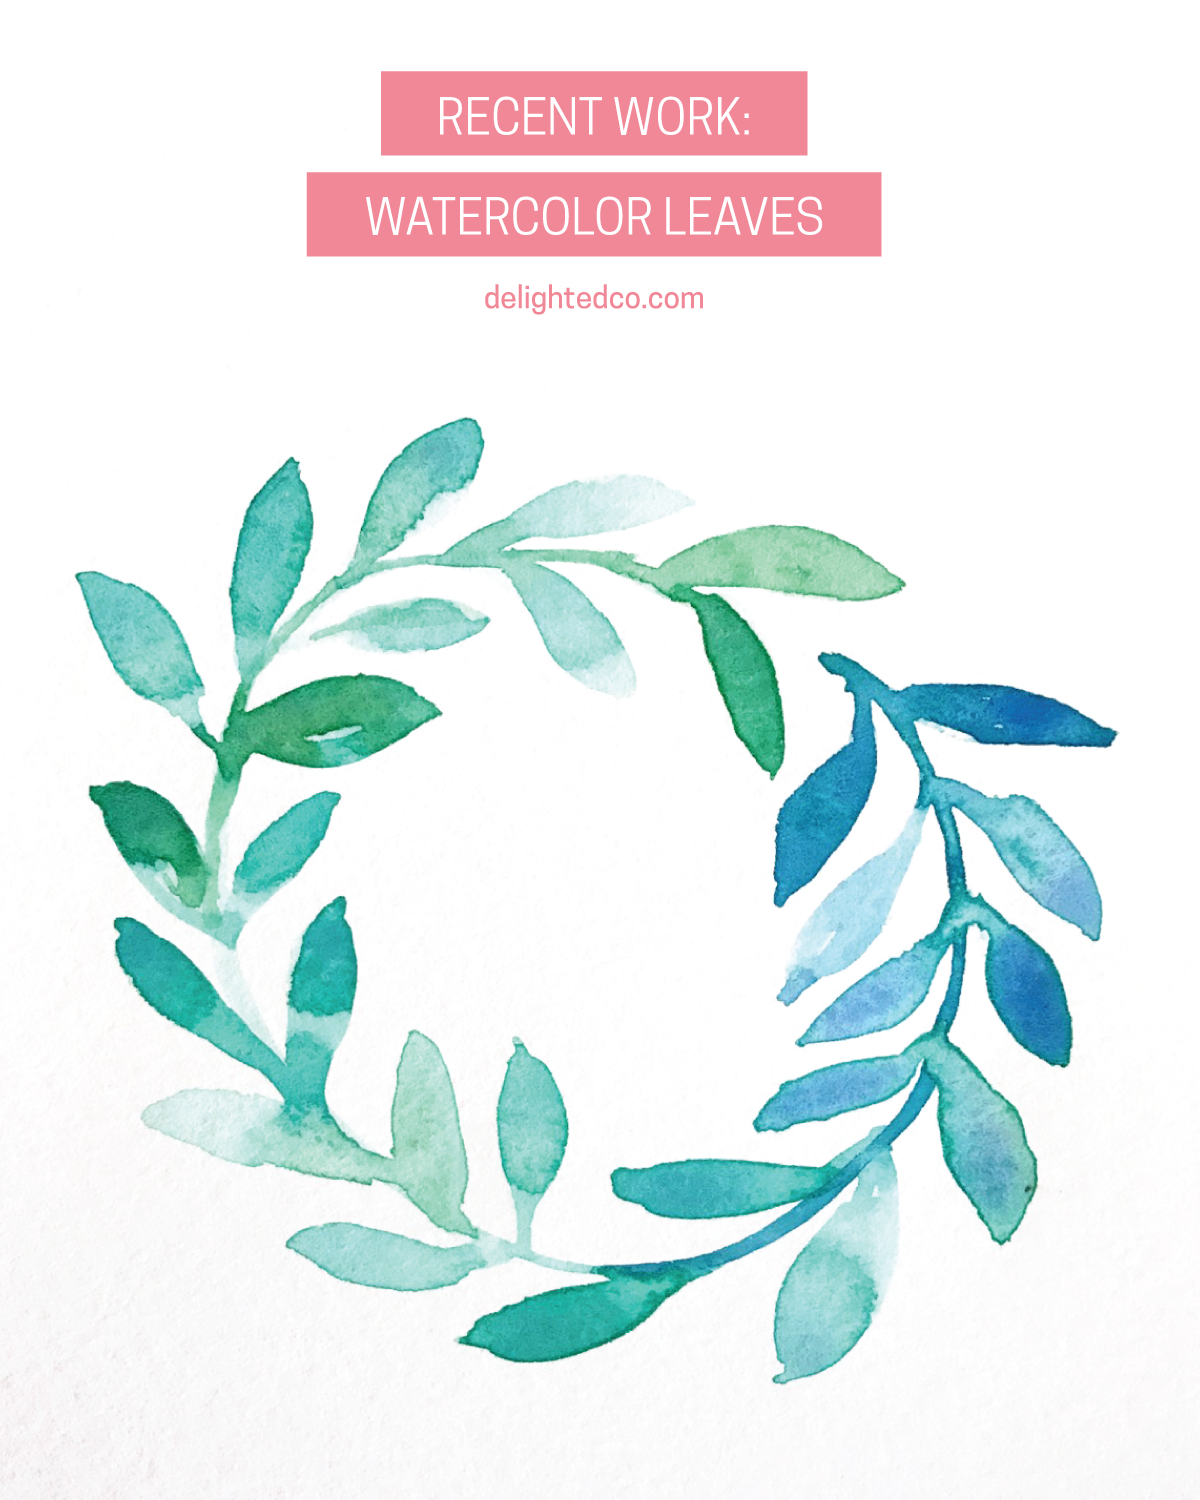 Learning to paint leaves with watercolor | Amanda Gomes | delightedco.com